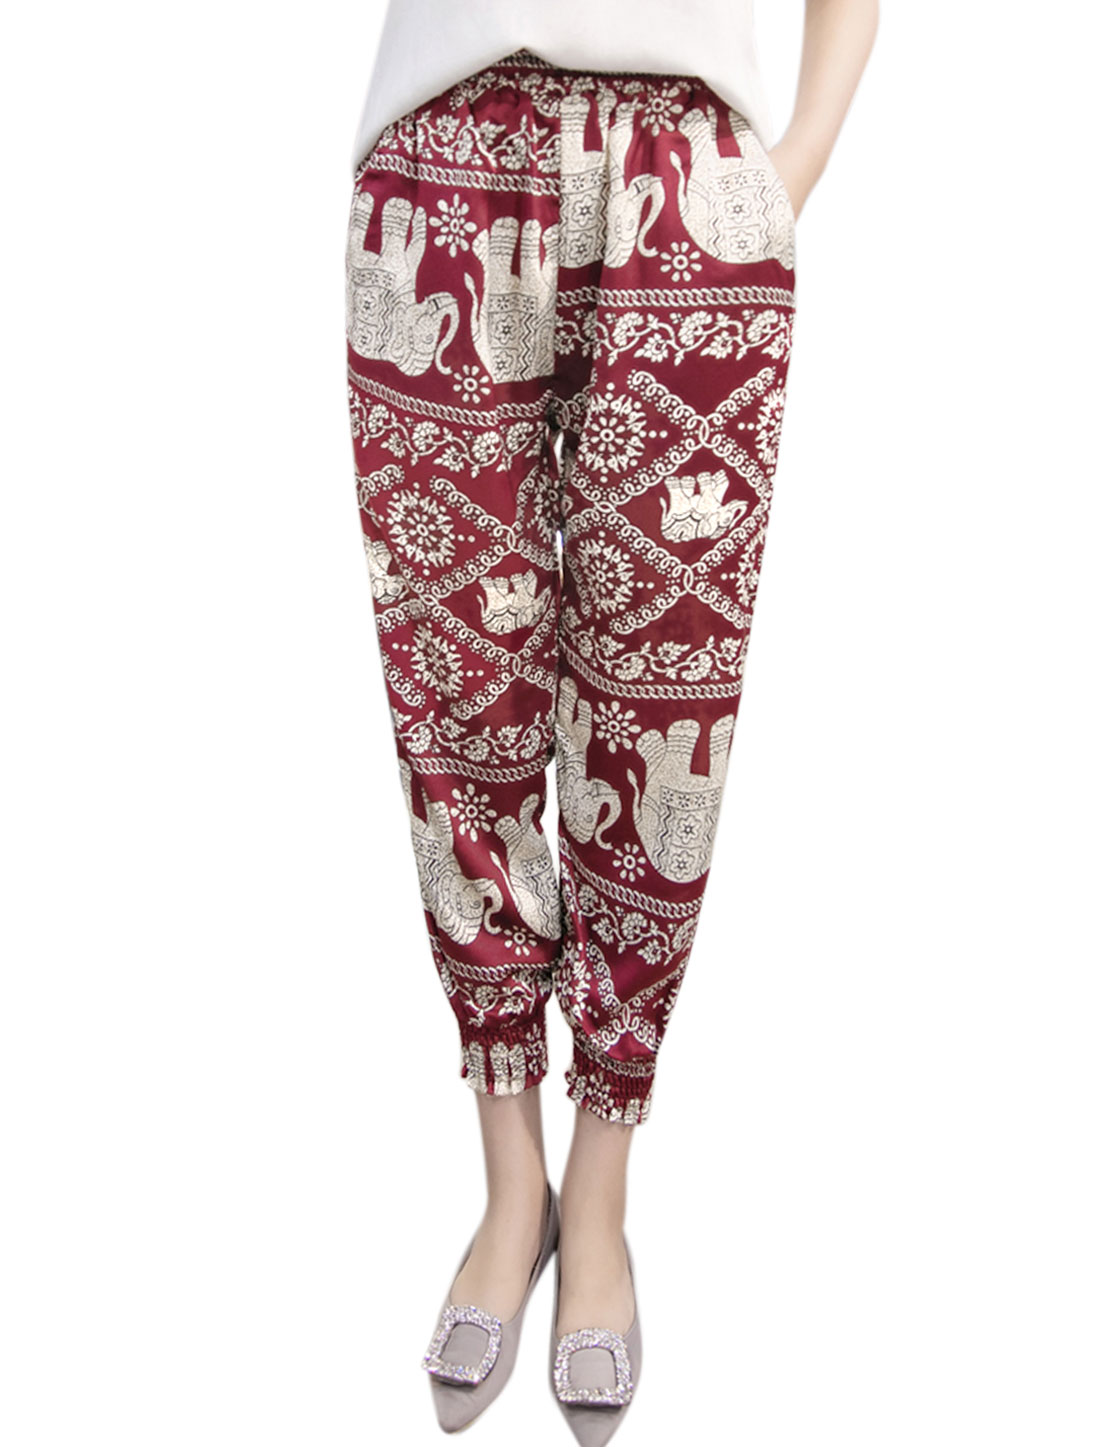 Women Floral Elephant Prints Smocked Cuffs Cropped Pants Red M